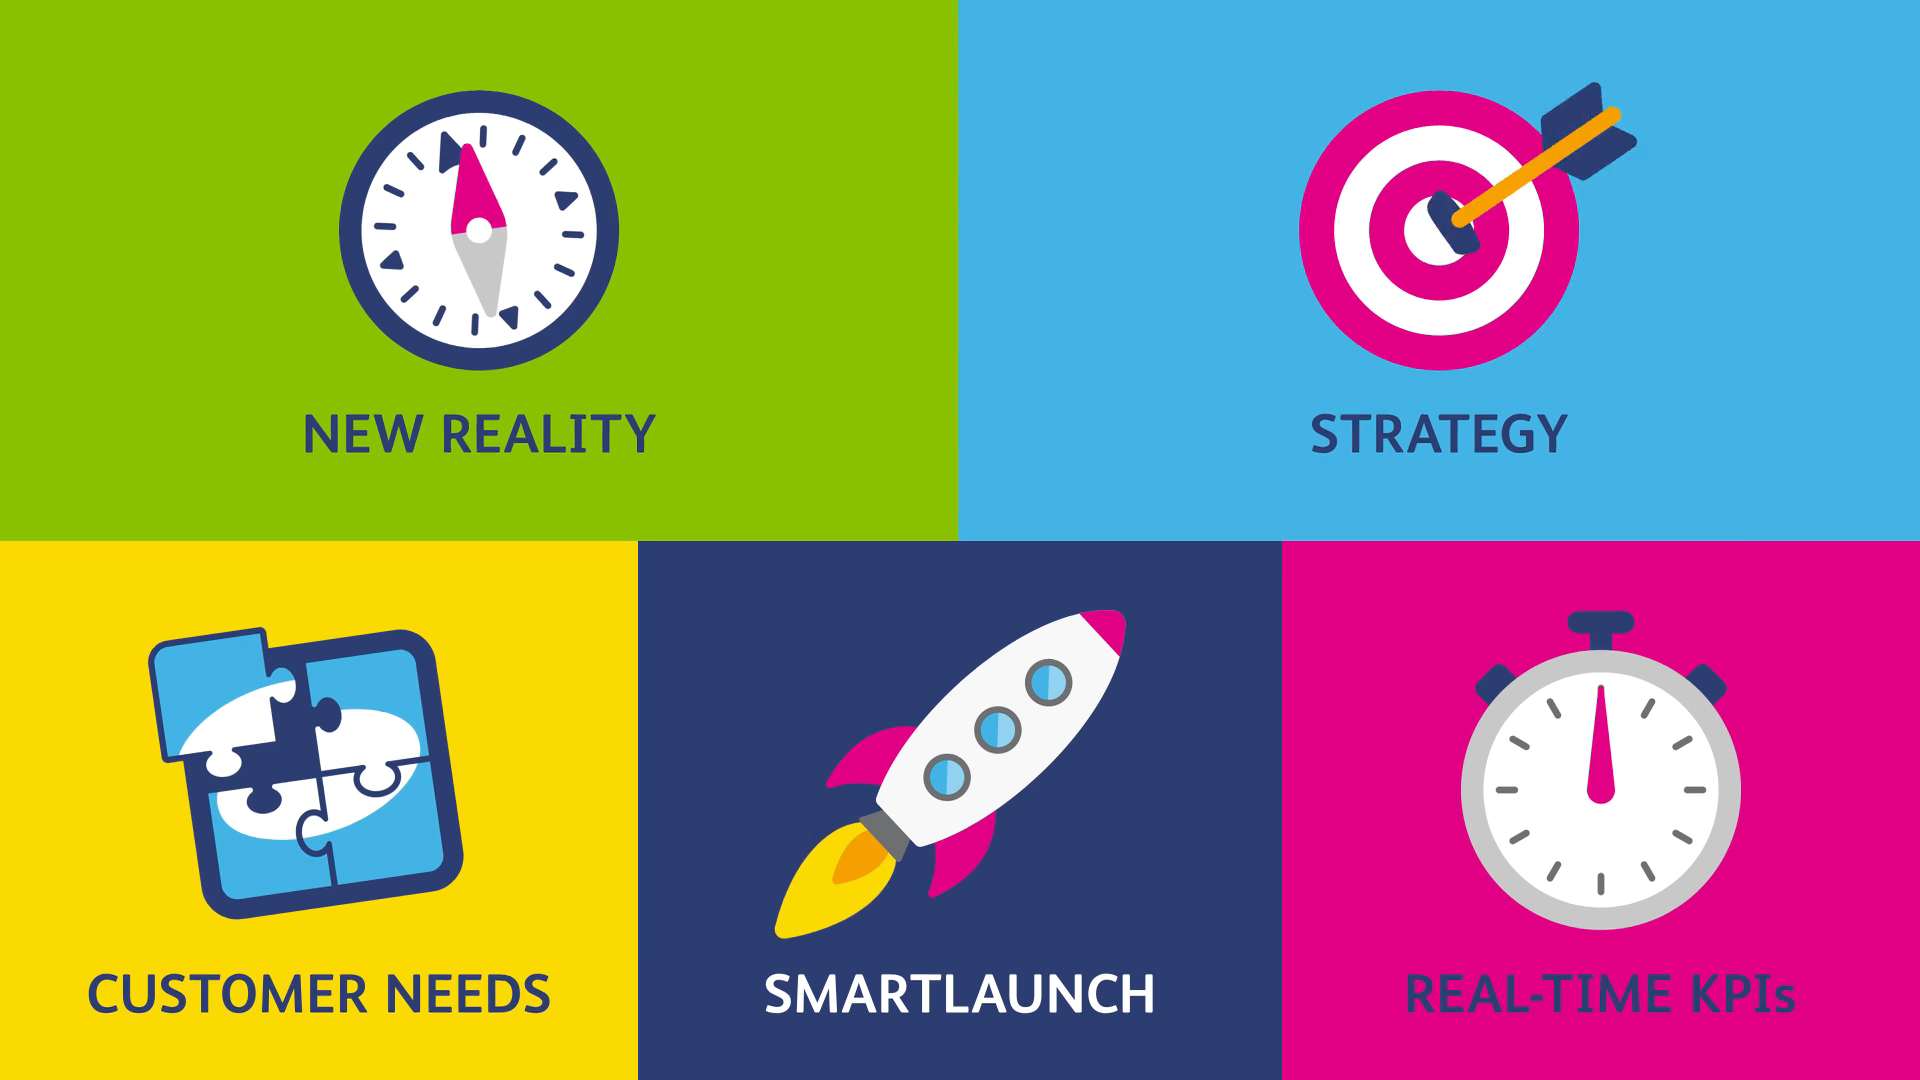 5 panels for an explainer animation with icons of compass, target, puzzle, rocket and stop watch